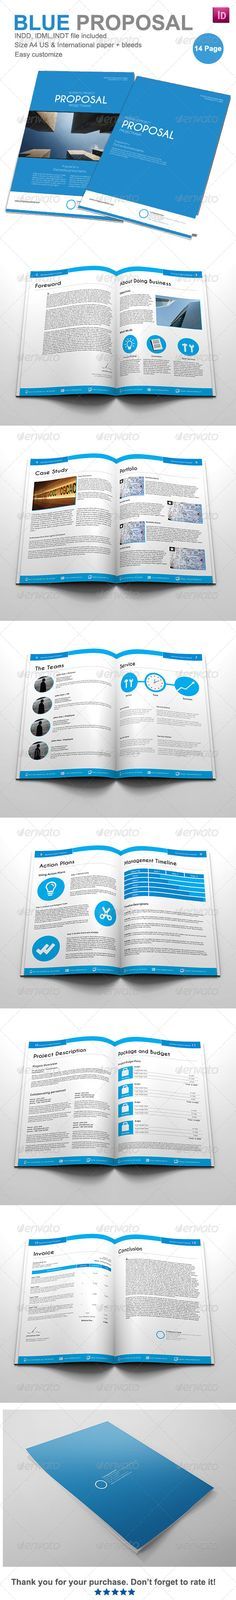 SEO - Business Proposal Templates Bundle II Business proposal - purchase proposal templates